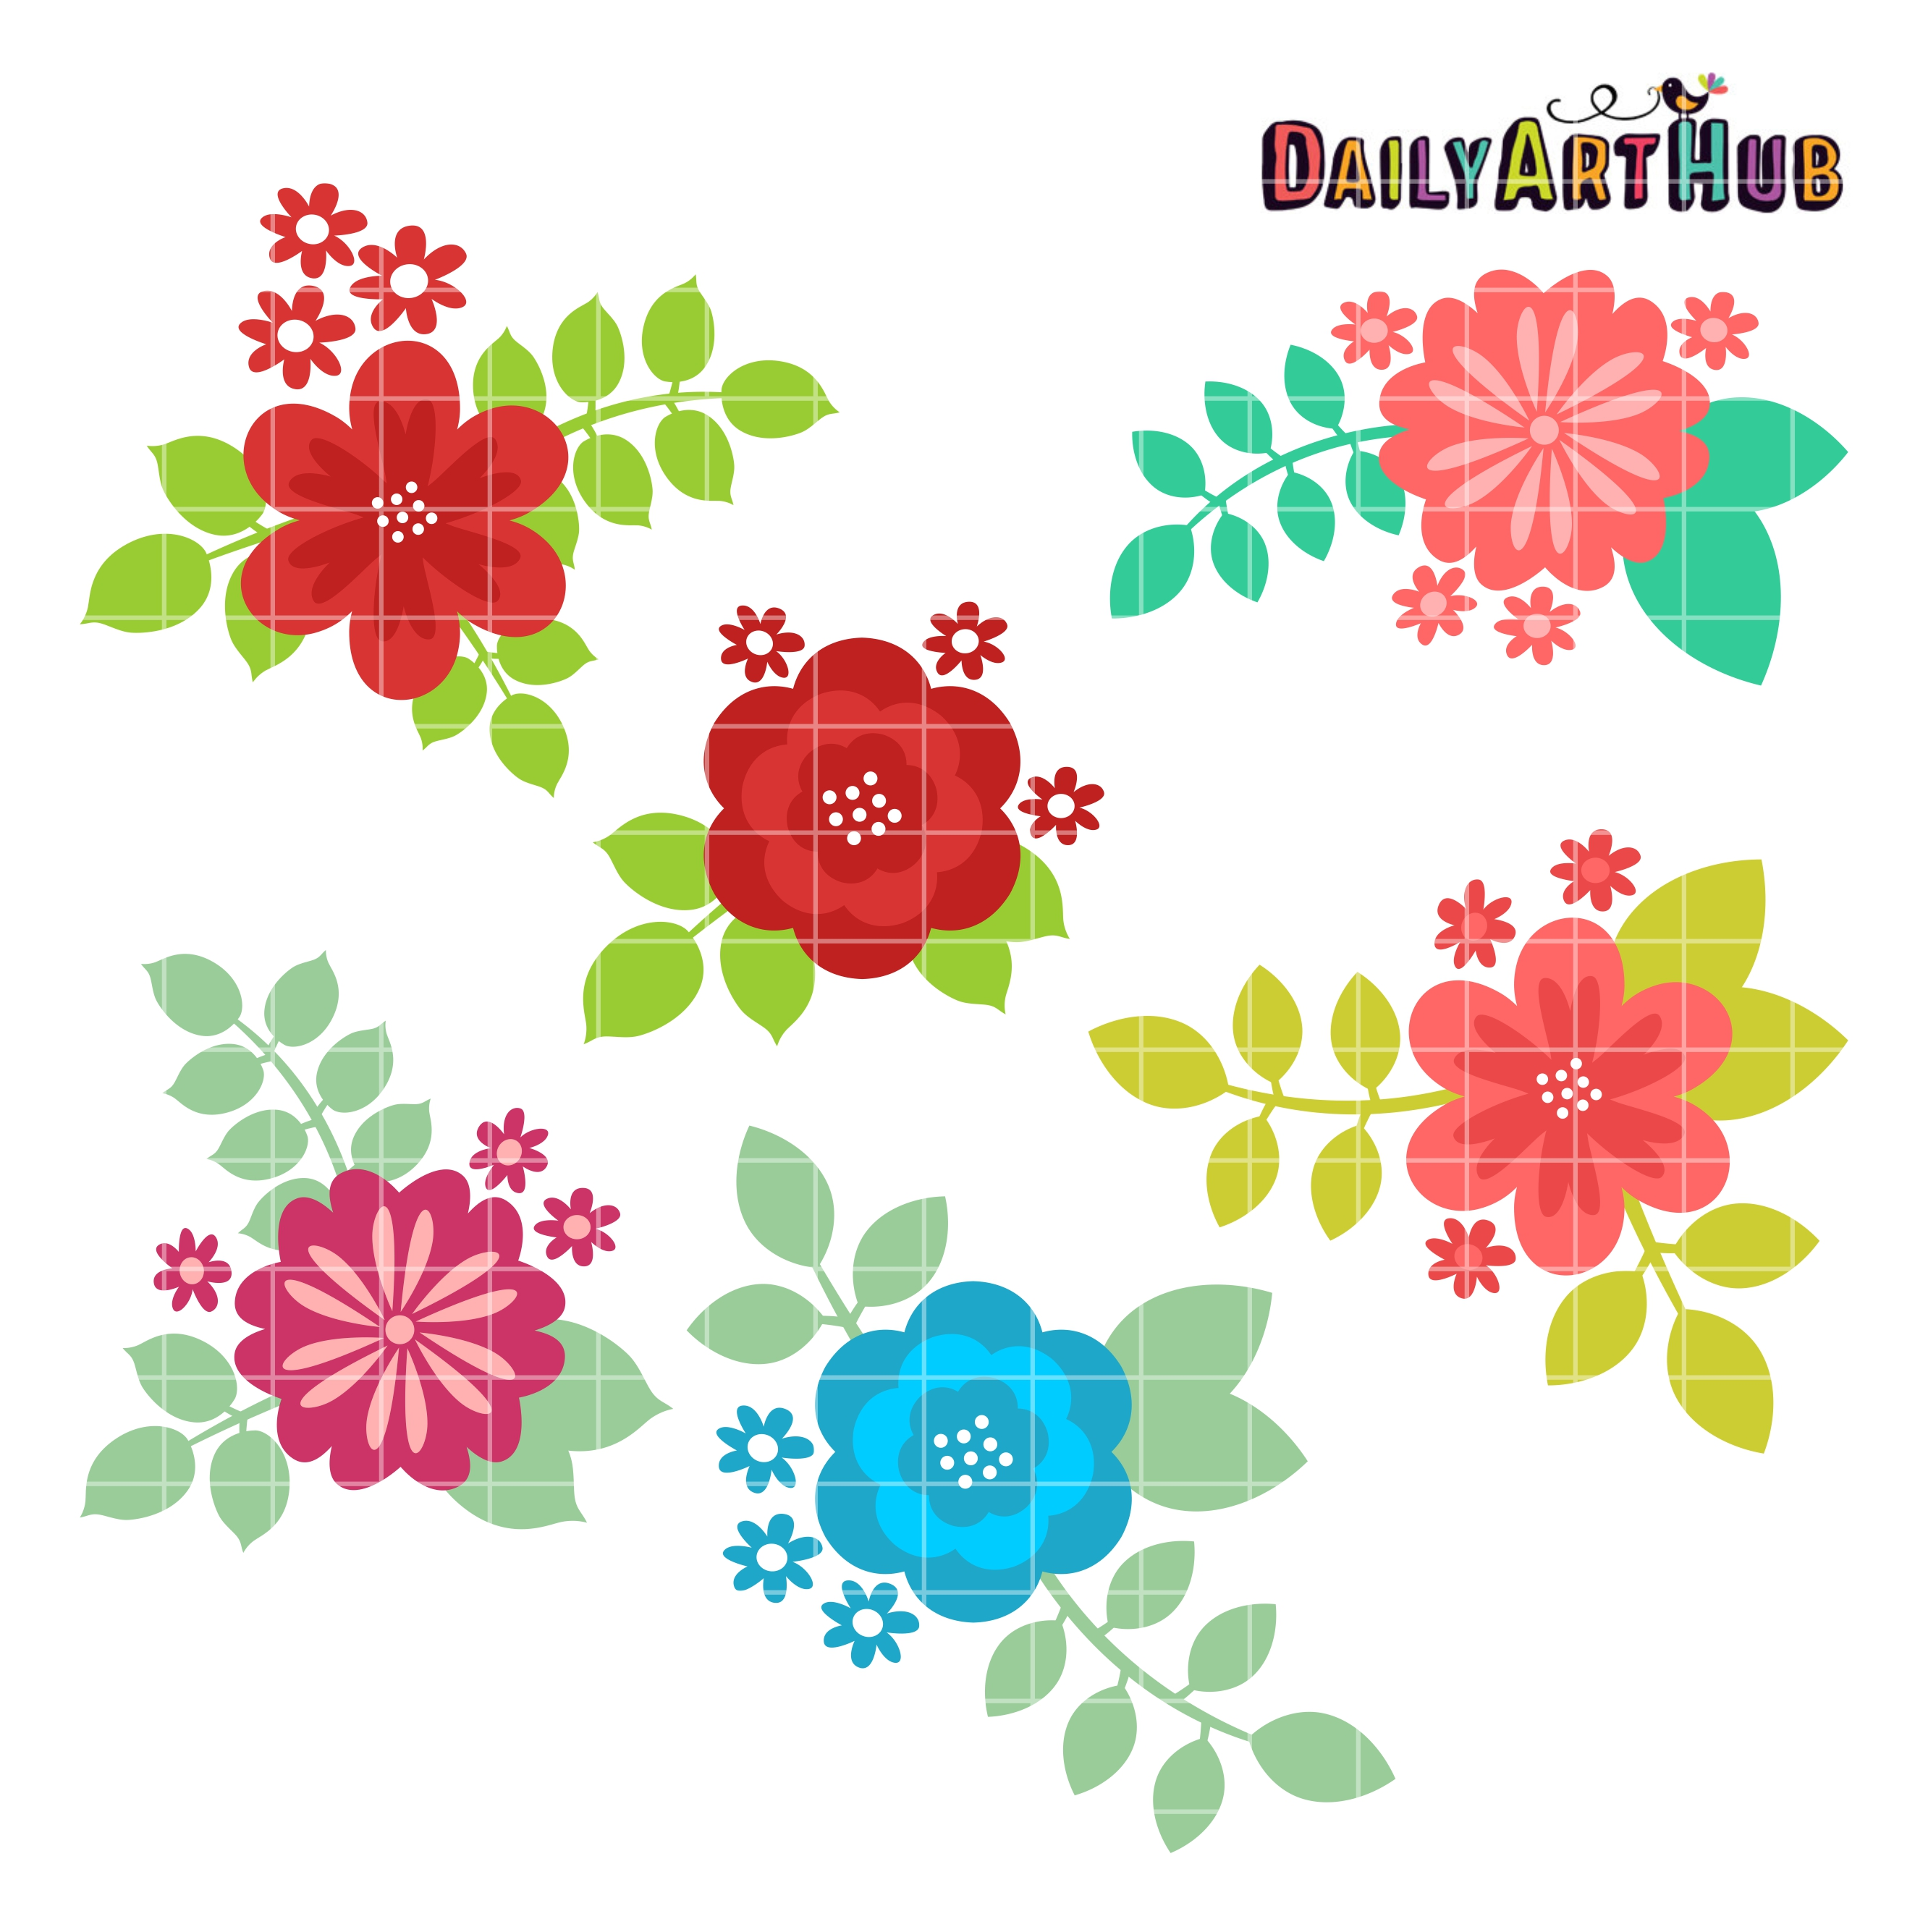 Flowers And Leaves Clip Art Set – Daily Art Hub – Free Clip Art Everyday